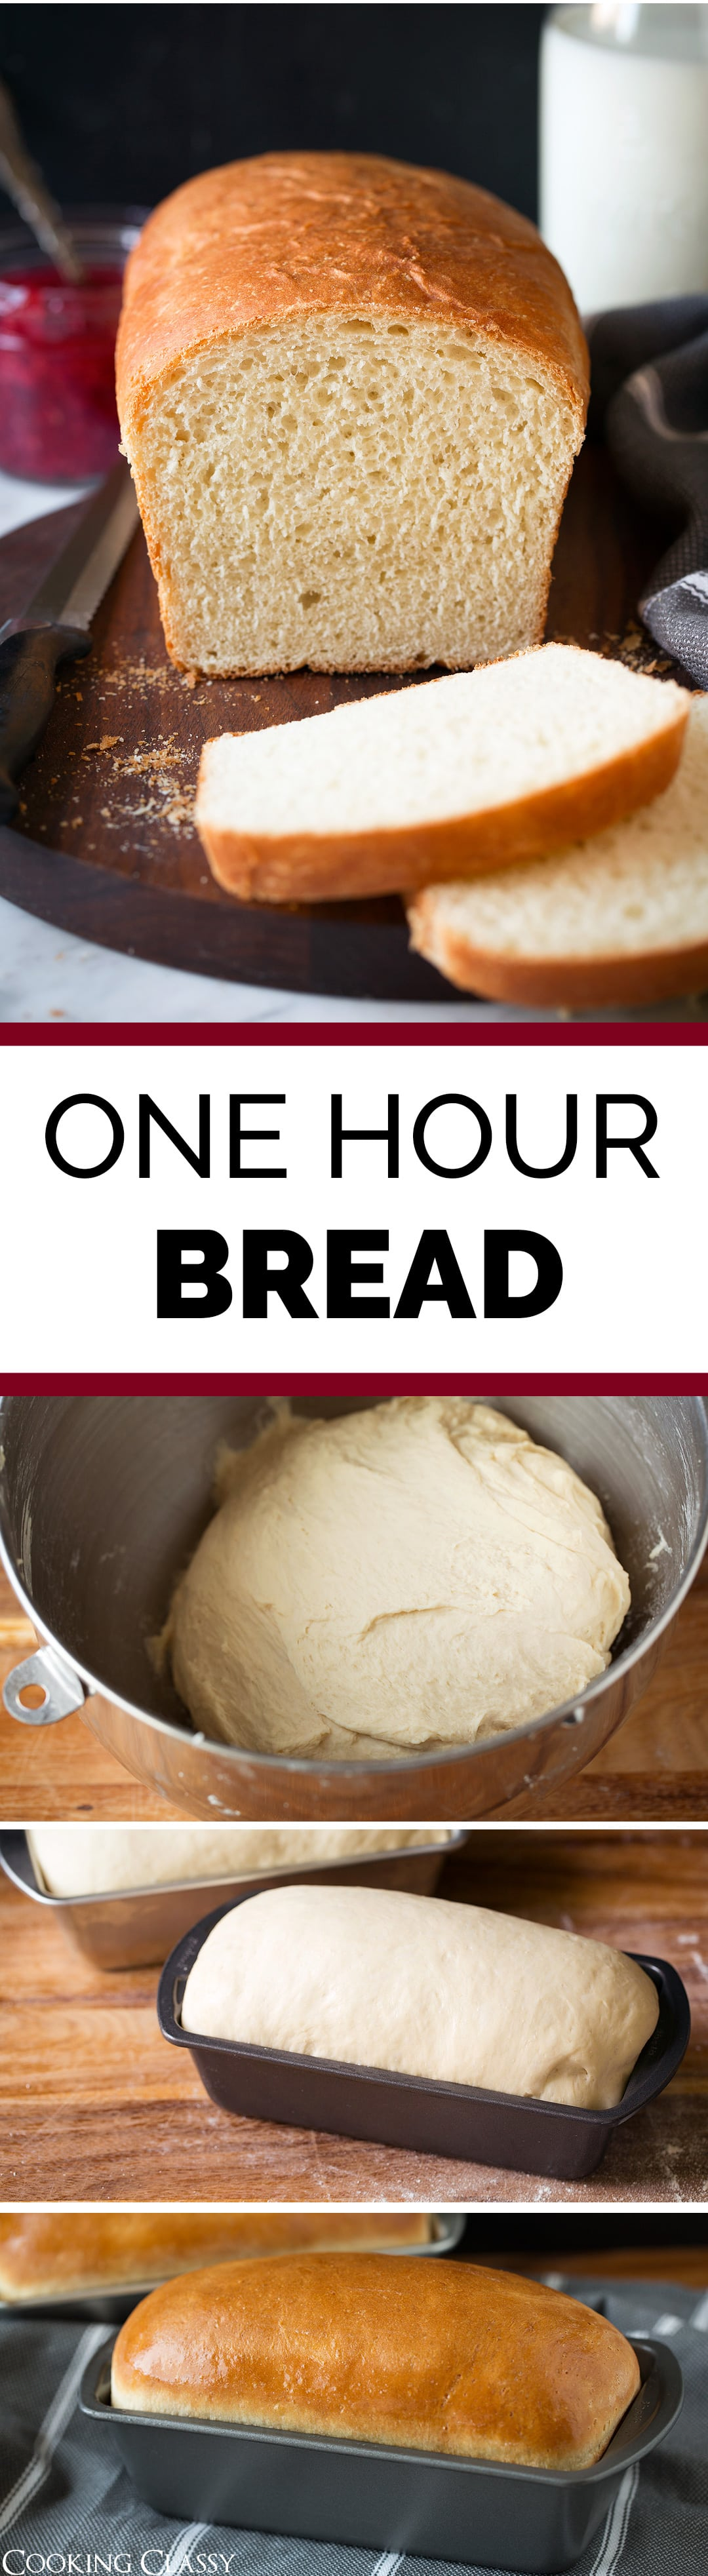 One Hour Bread - White bread recipe that's ready from start to finish in 1 hour! So easy, so fast and so delicious! Perfect for soup, sandwiches, and French toast! #onehour #easy #bread #recipe